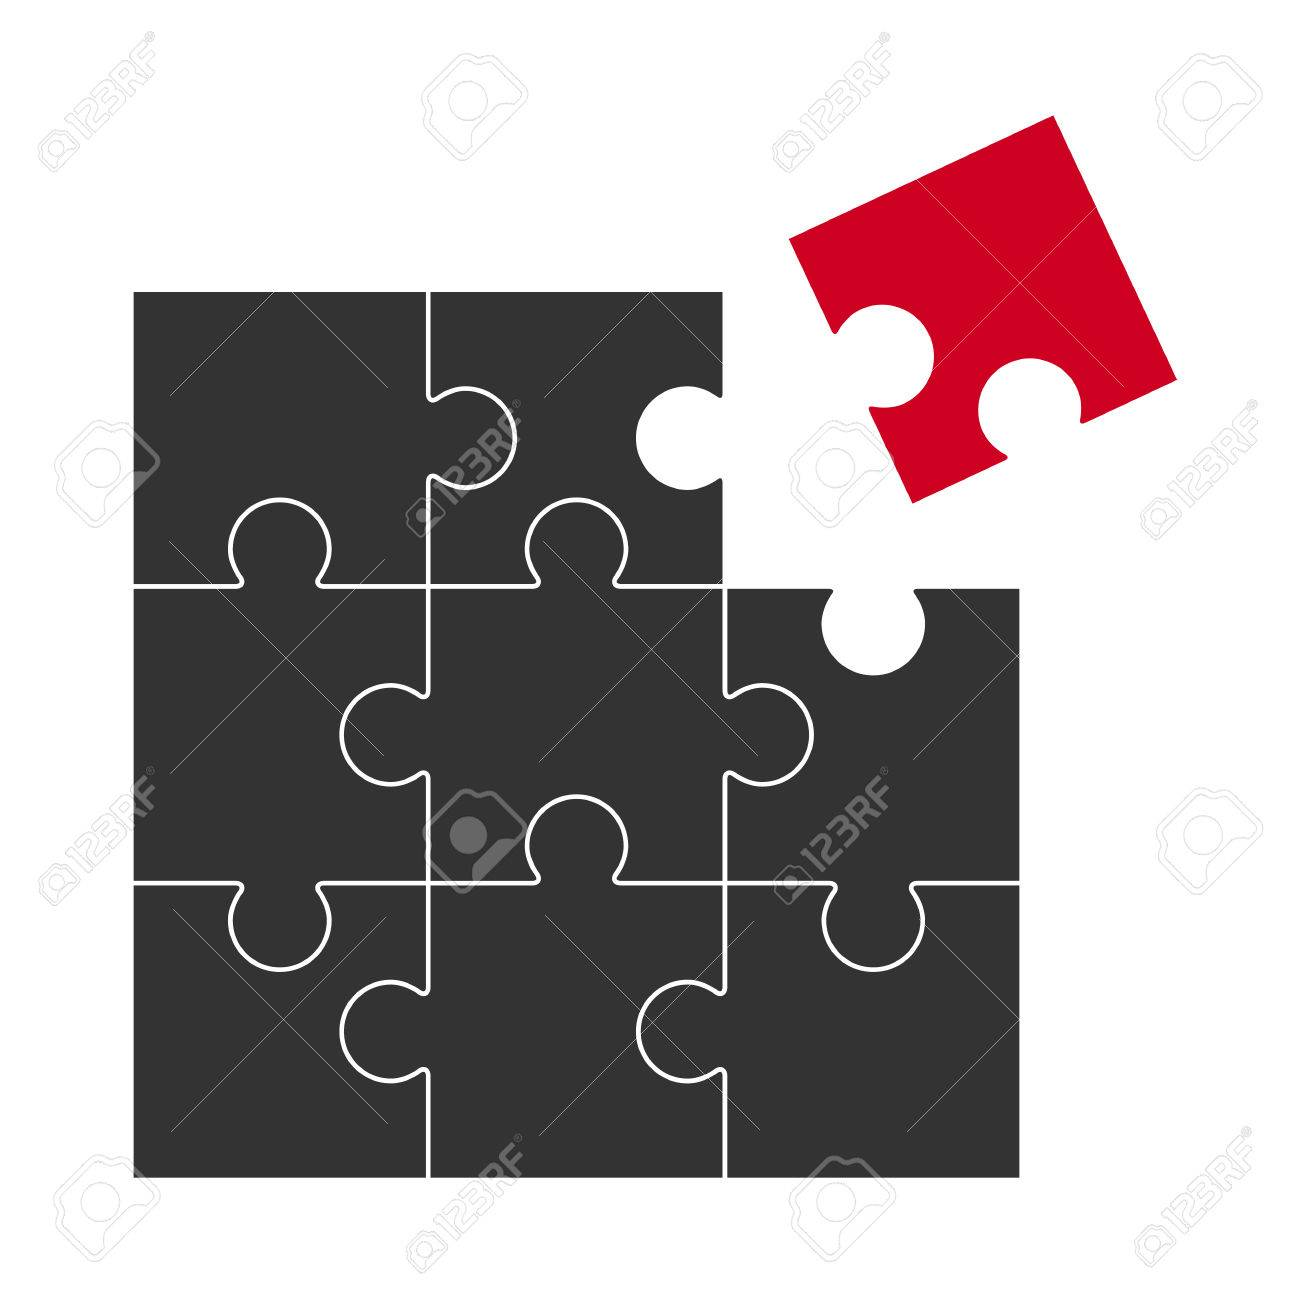 black puzzle with one red part who does not fit royalty free